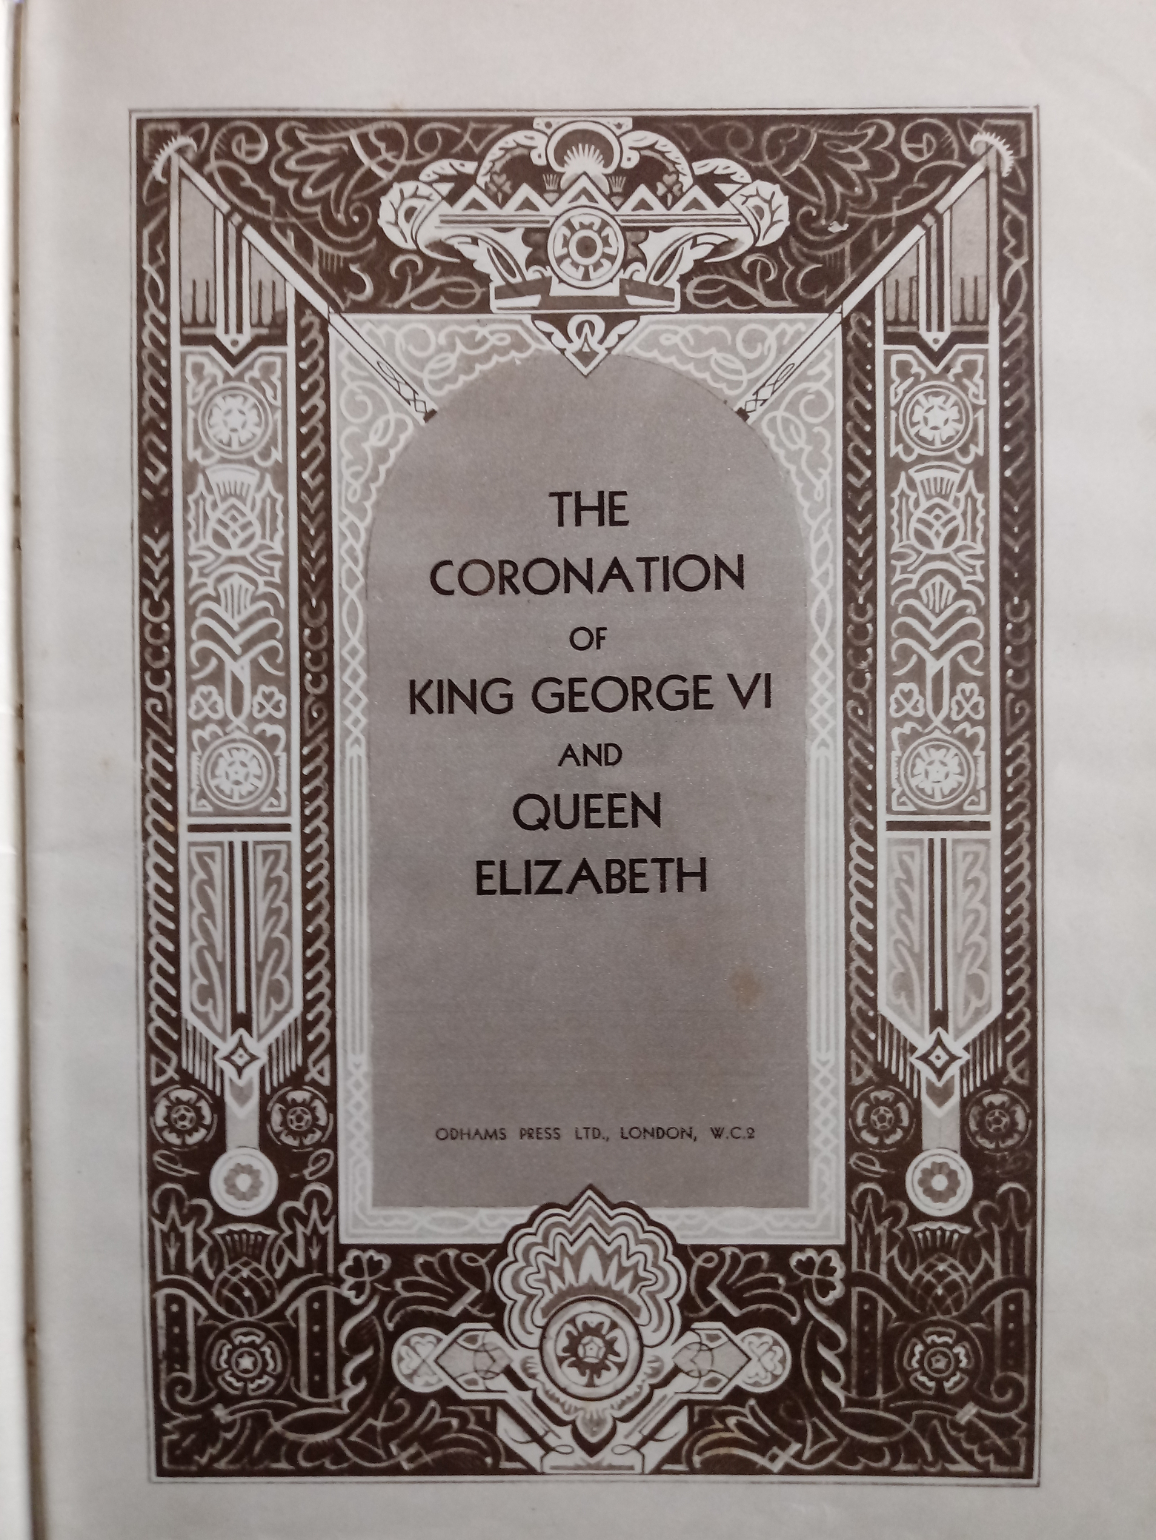 2 x hardback books published Odhams Press 1- The Coronation Of King George VI And Queen Elizabeth - Image 4 of 7